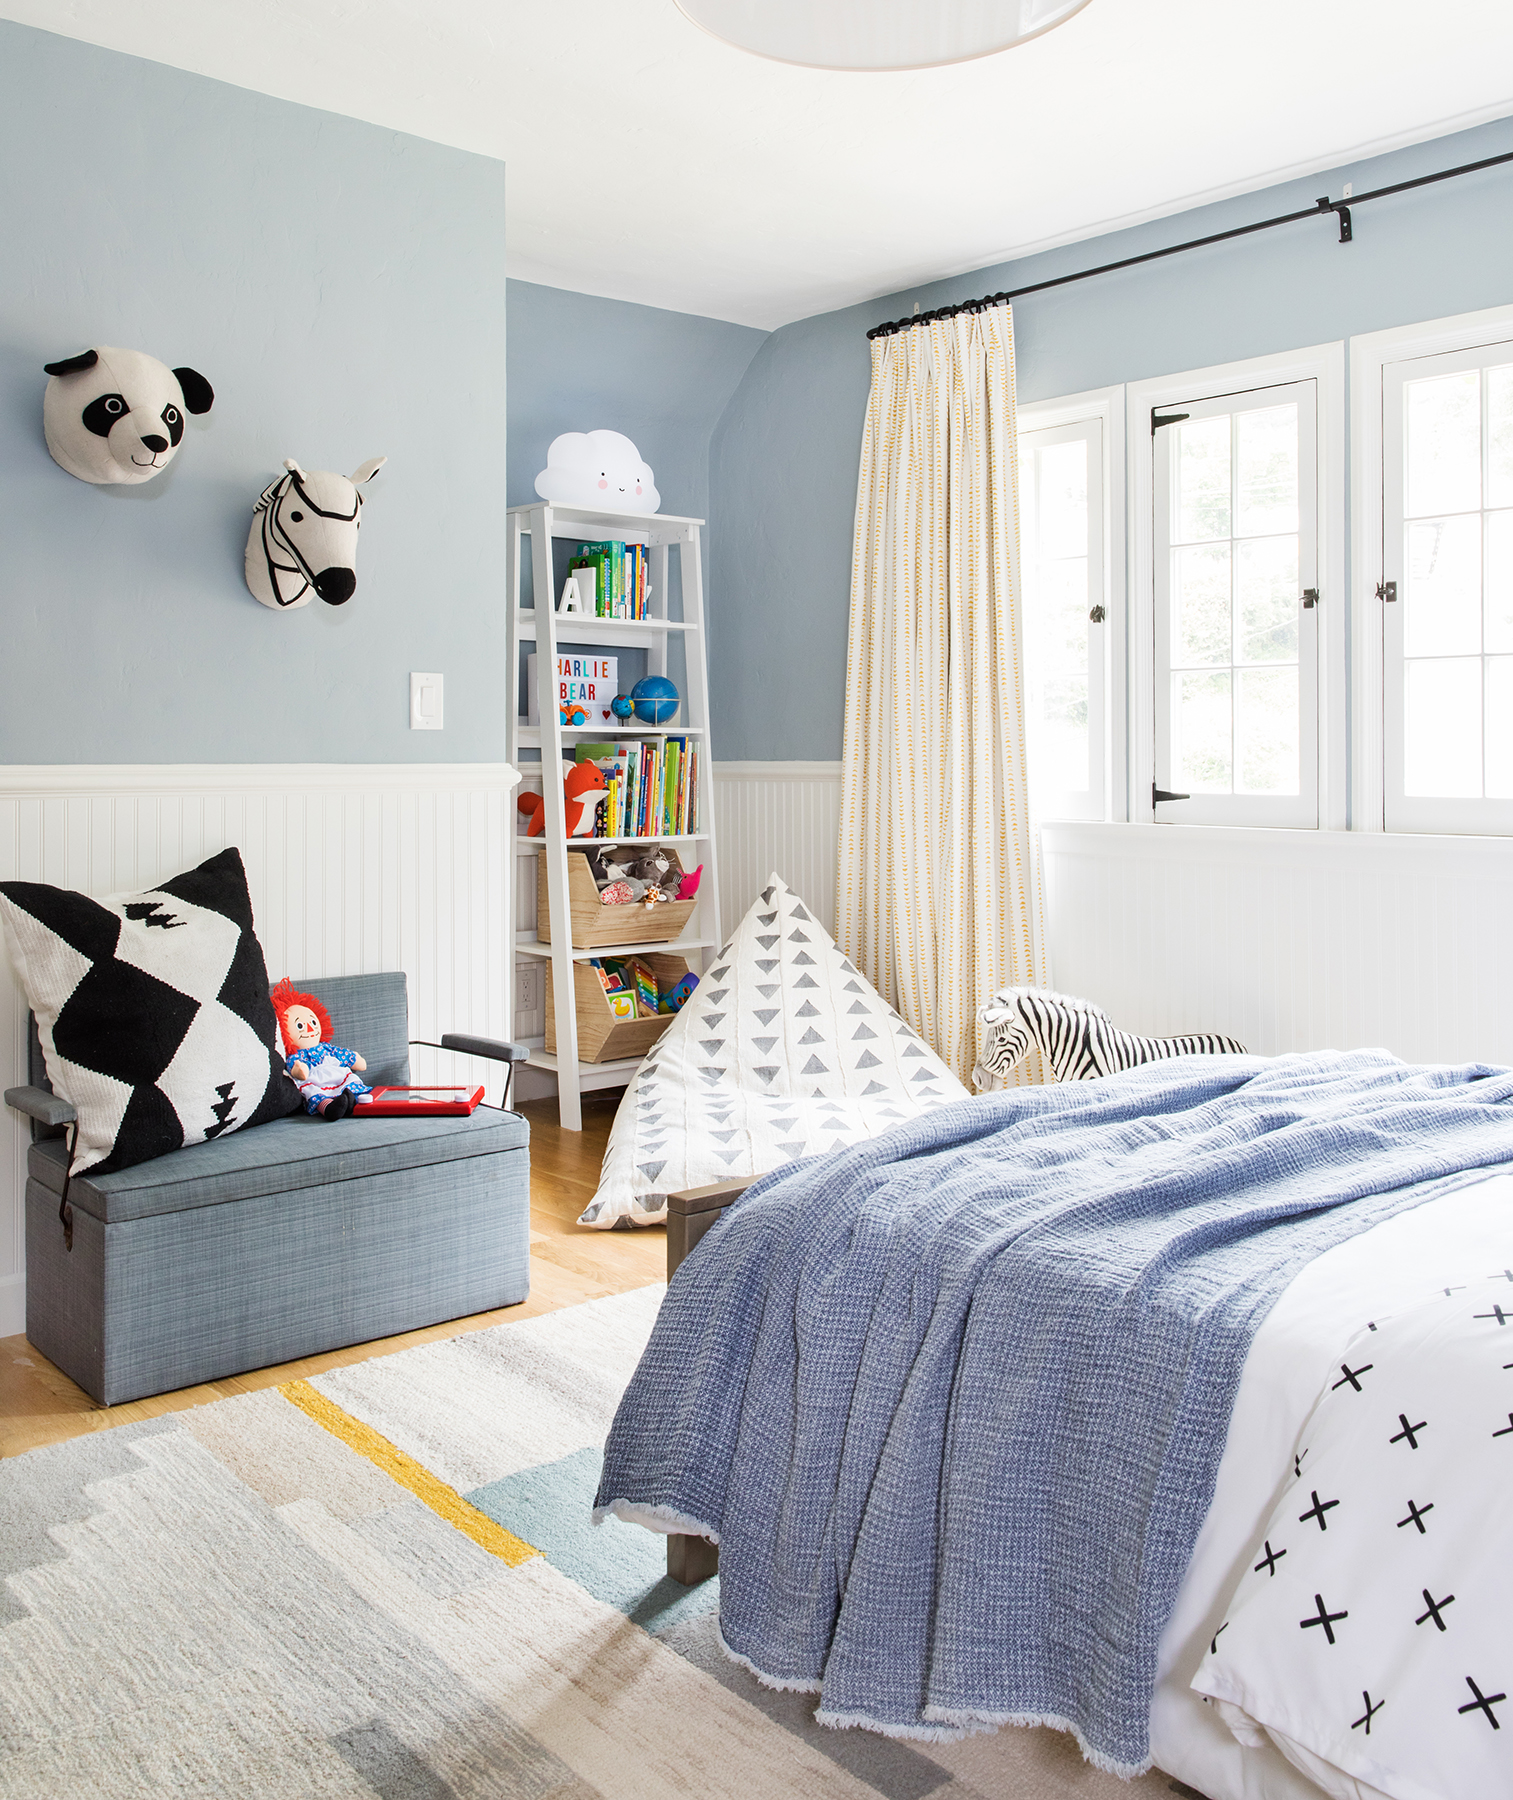 Free Home Decorating: 23 Decorating Tricks For Your Bedroom